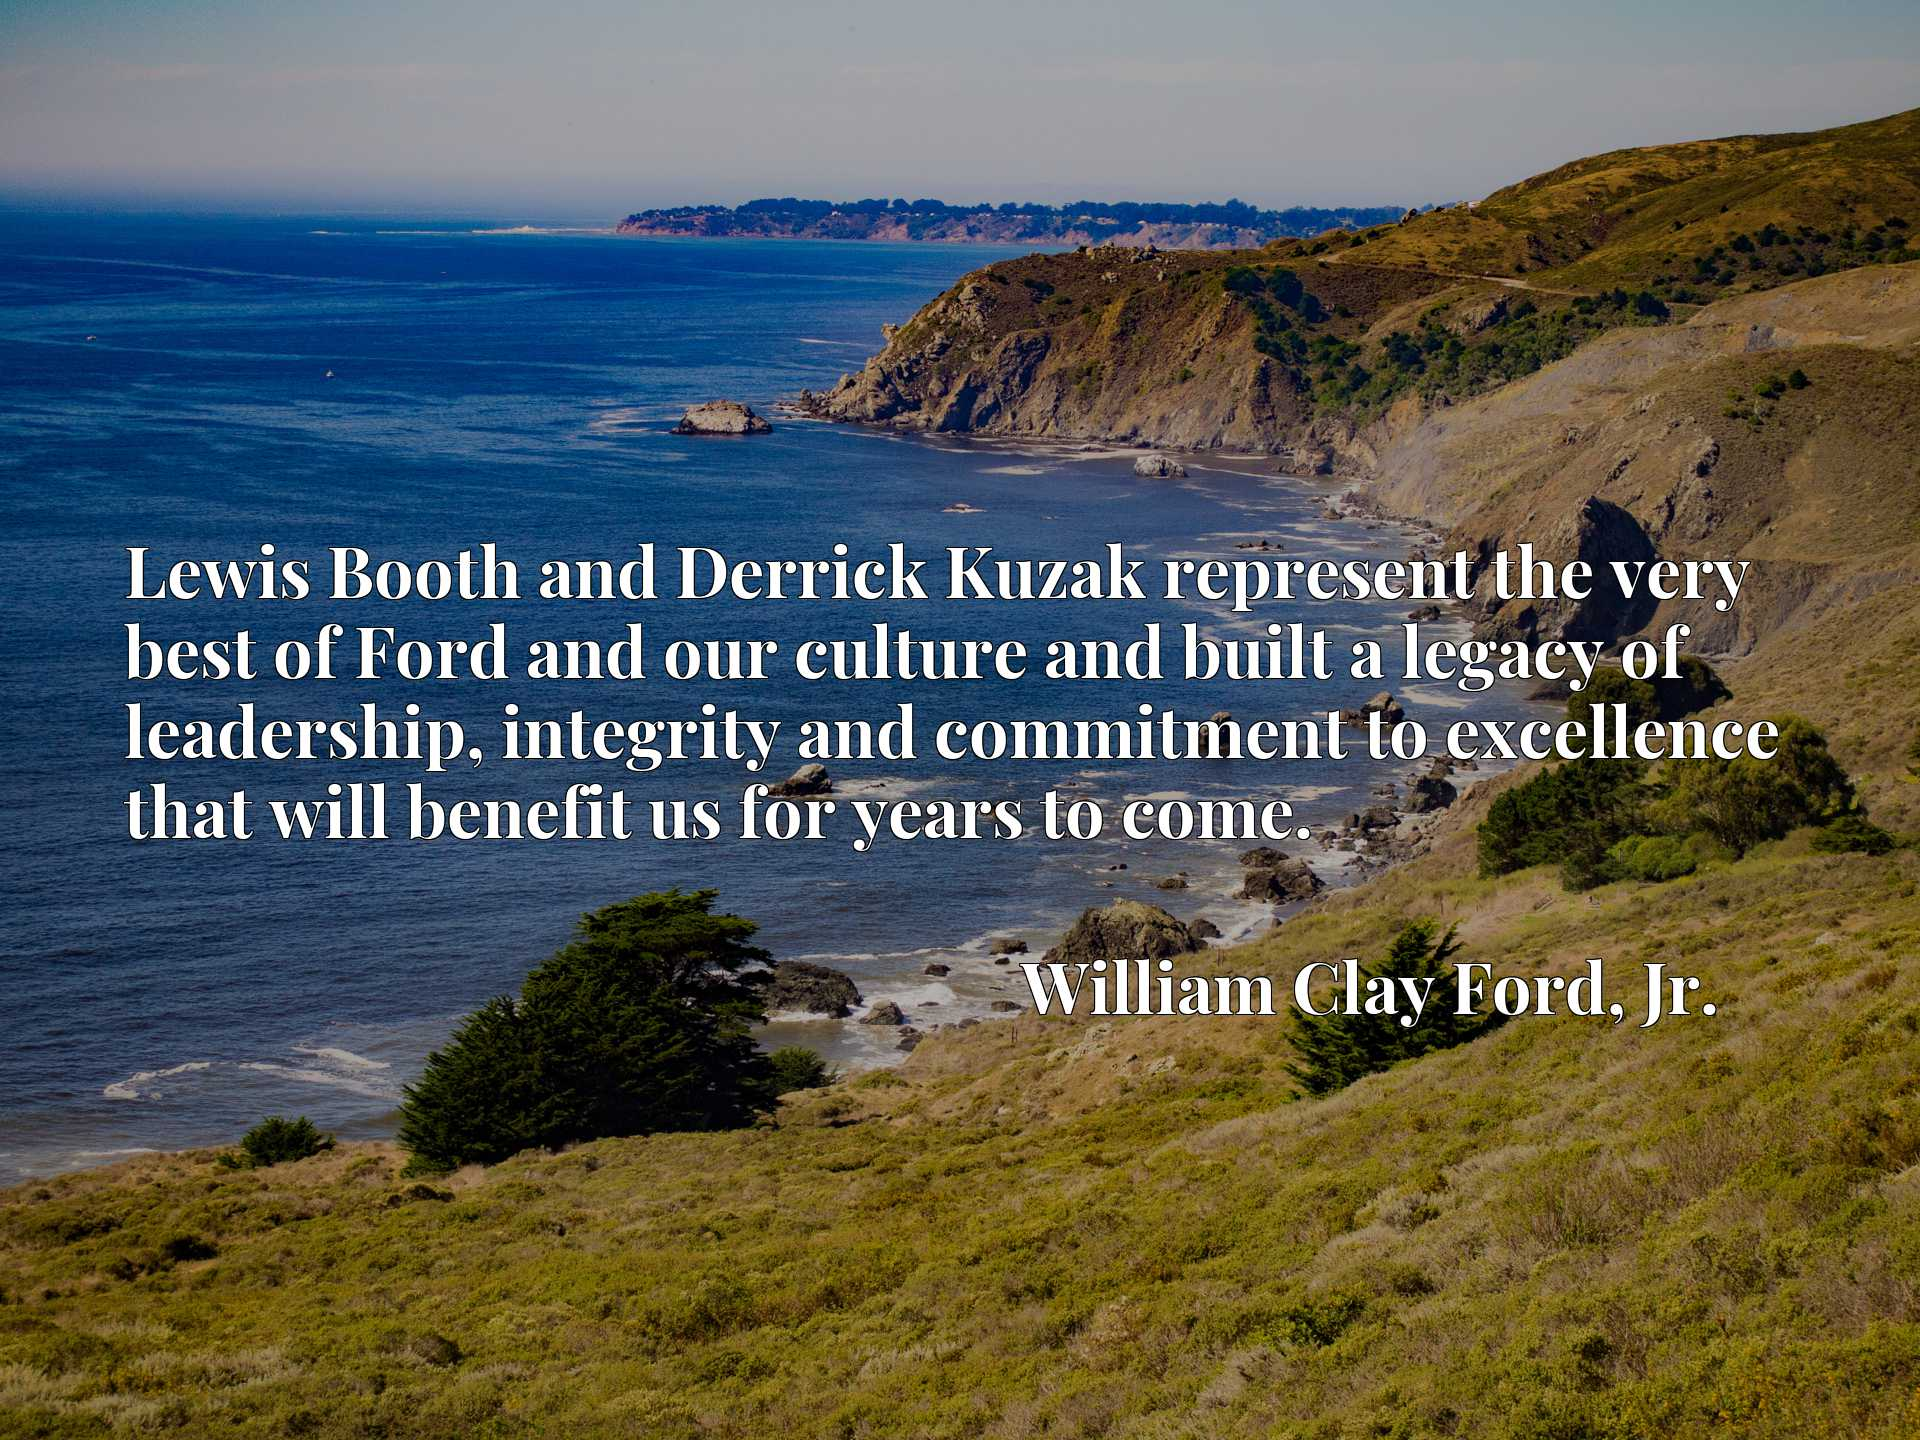 Quote Picture :Lewis Booth and Derrick Kuzak represent the very best of Ford and our culture and built a legacy of leadership, integrity and commitment to excellence that will benefit us for years to come.